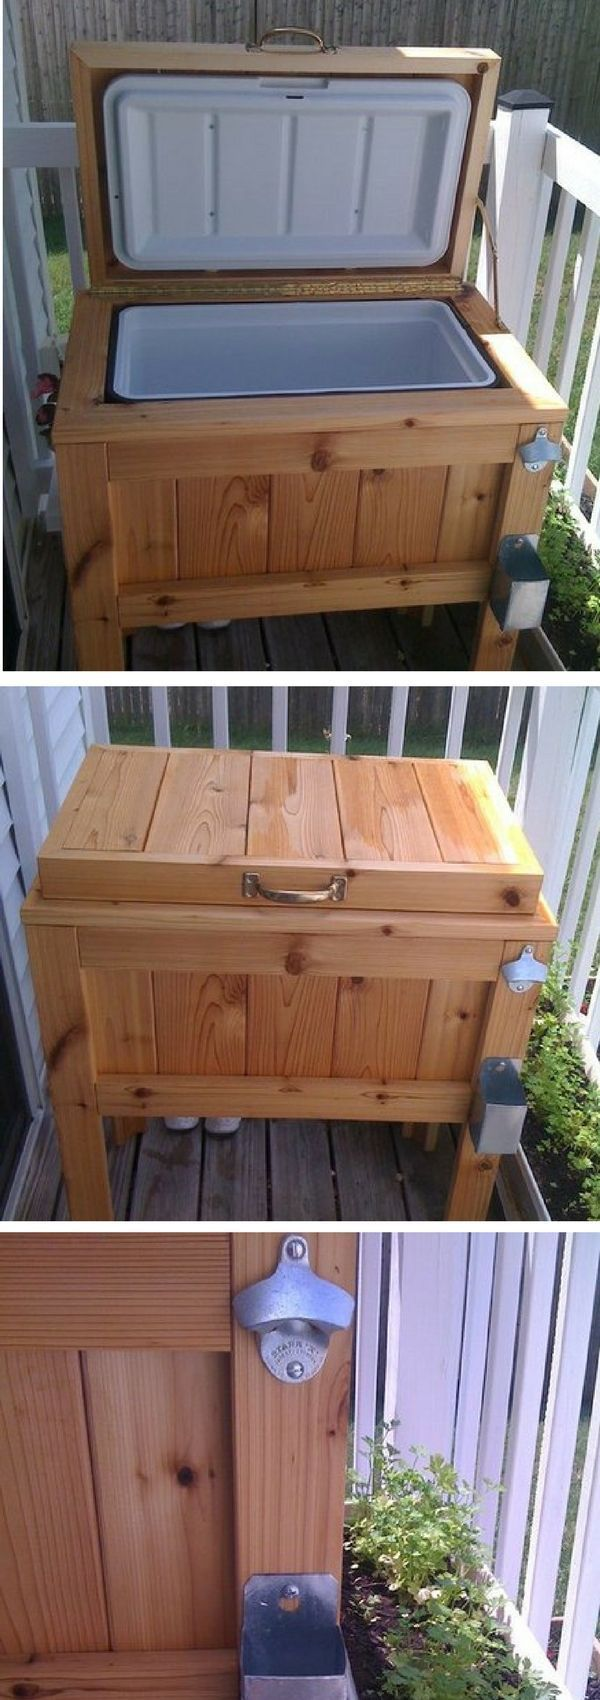 DIY Garden Furniture – 40 simple projects that you can do immediately